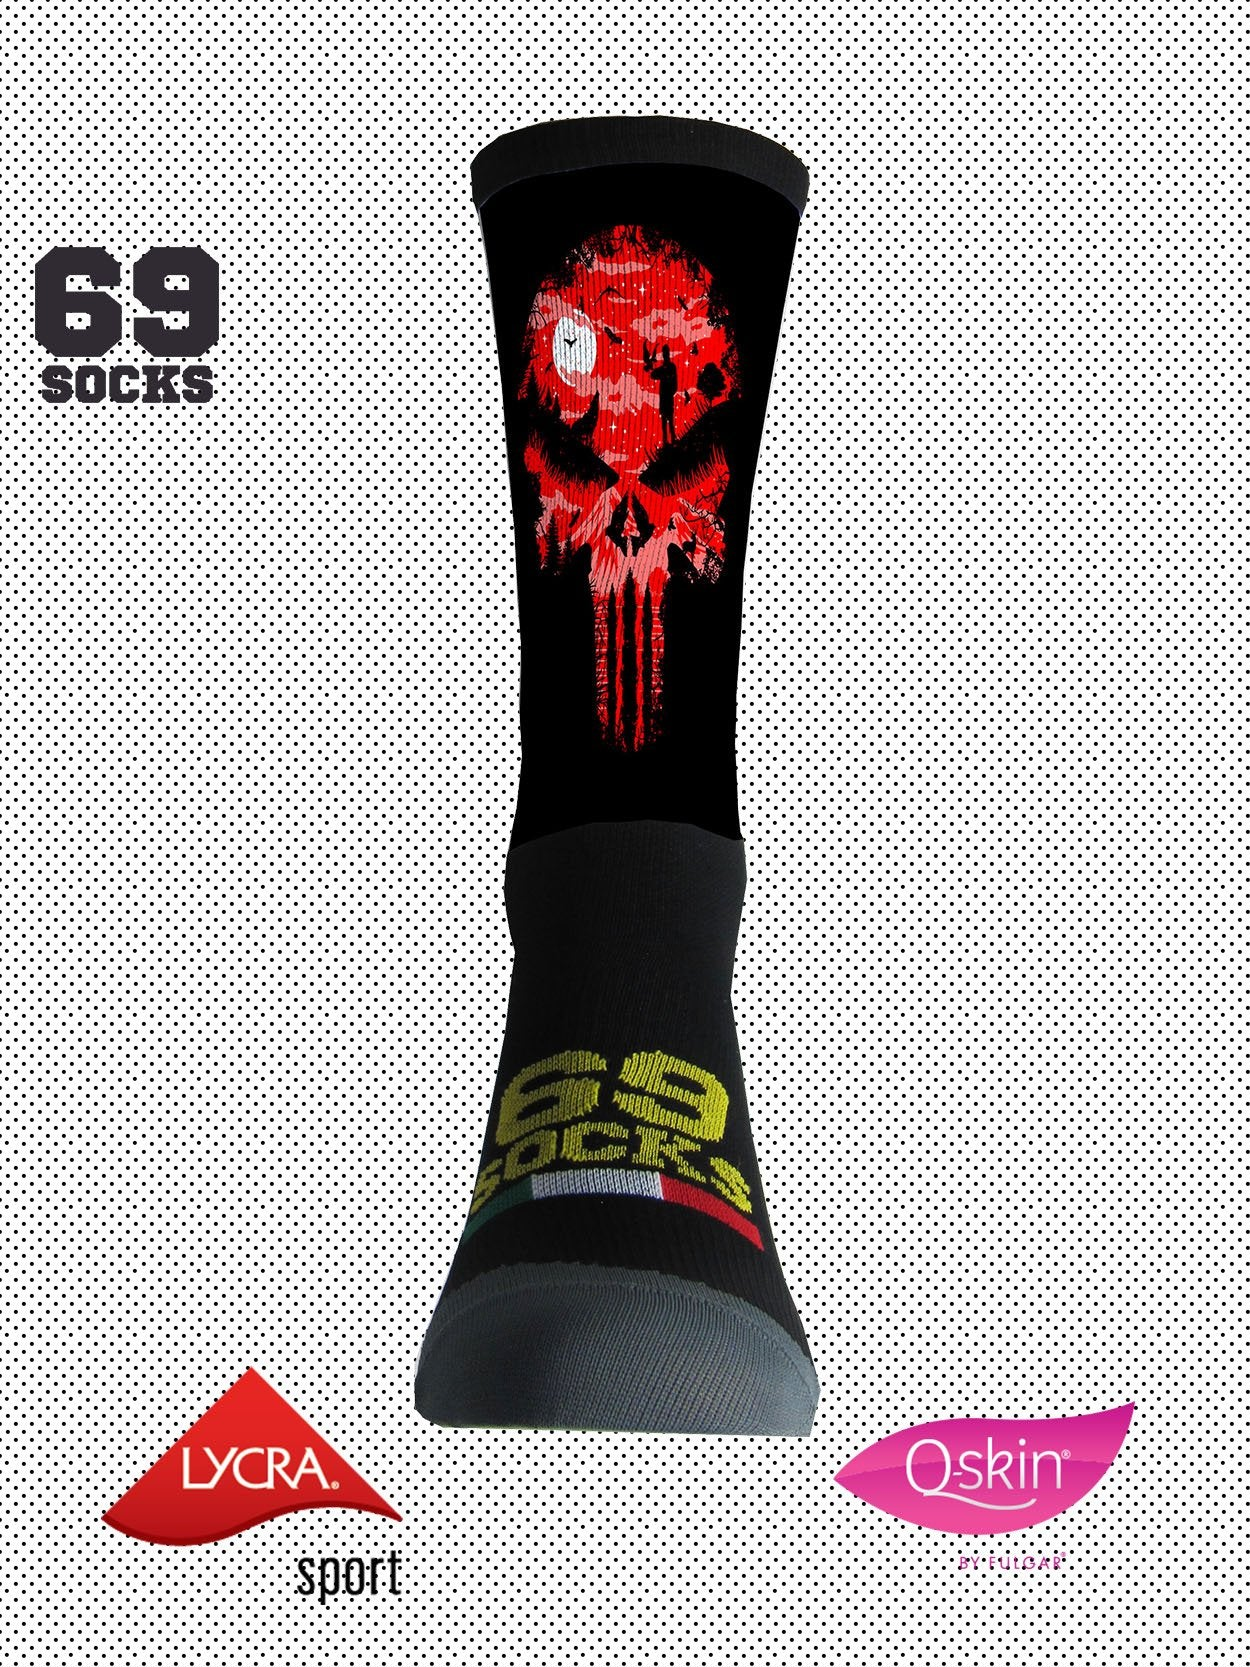 #69socks Q-skin Short Redpunish